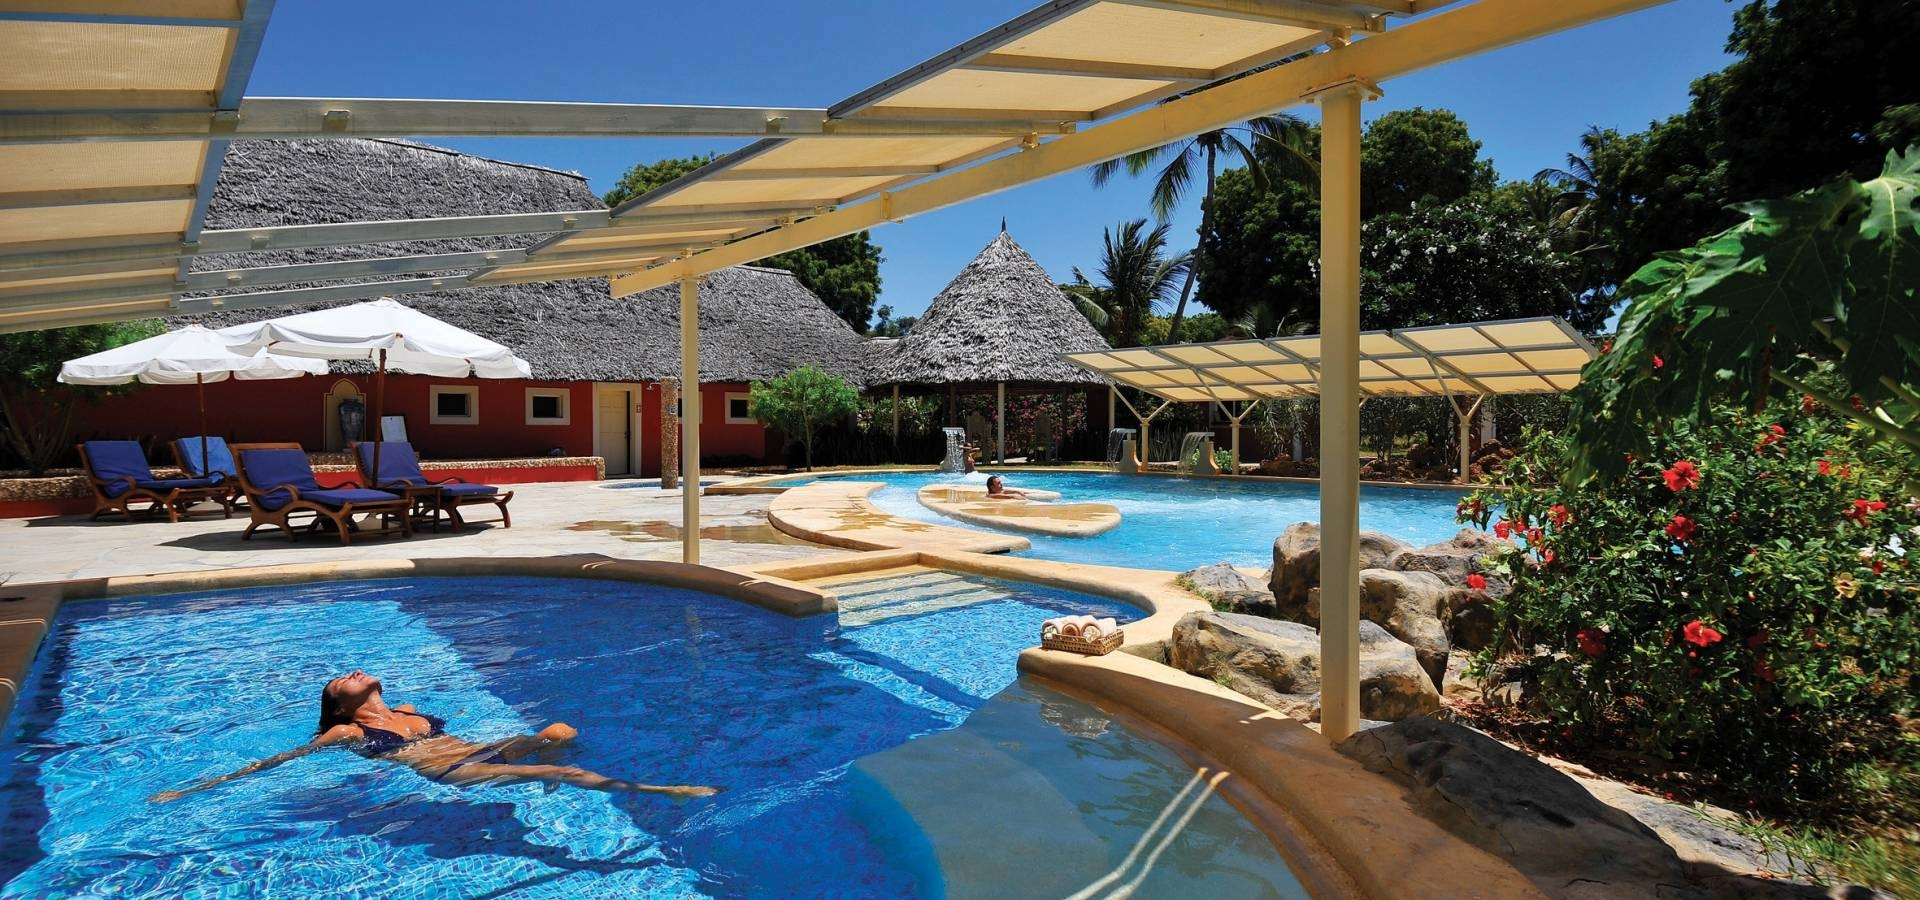 Kenia - Hotel Diamonds Dream of Africa